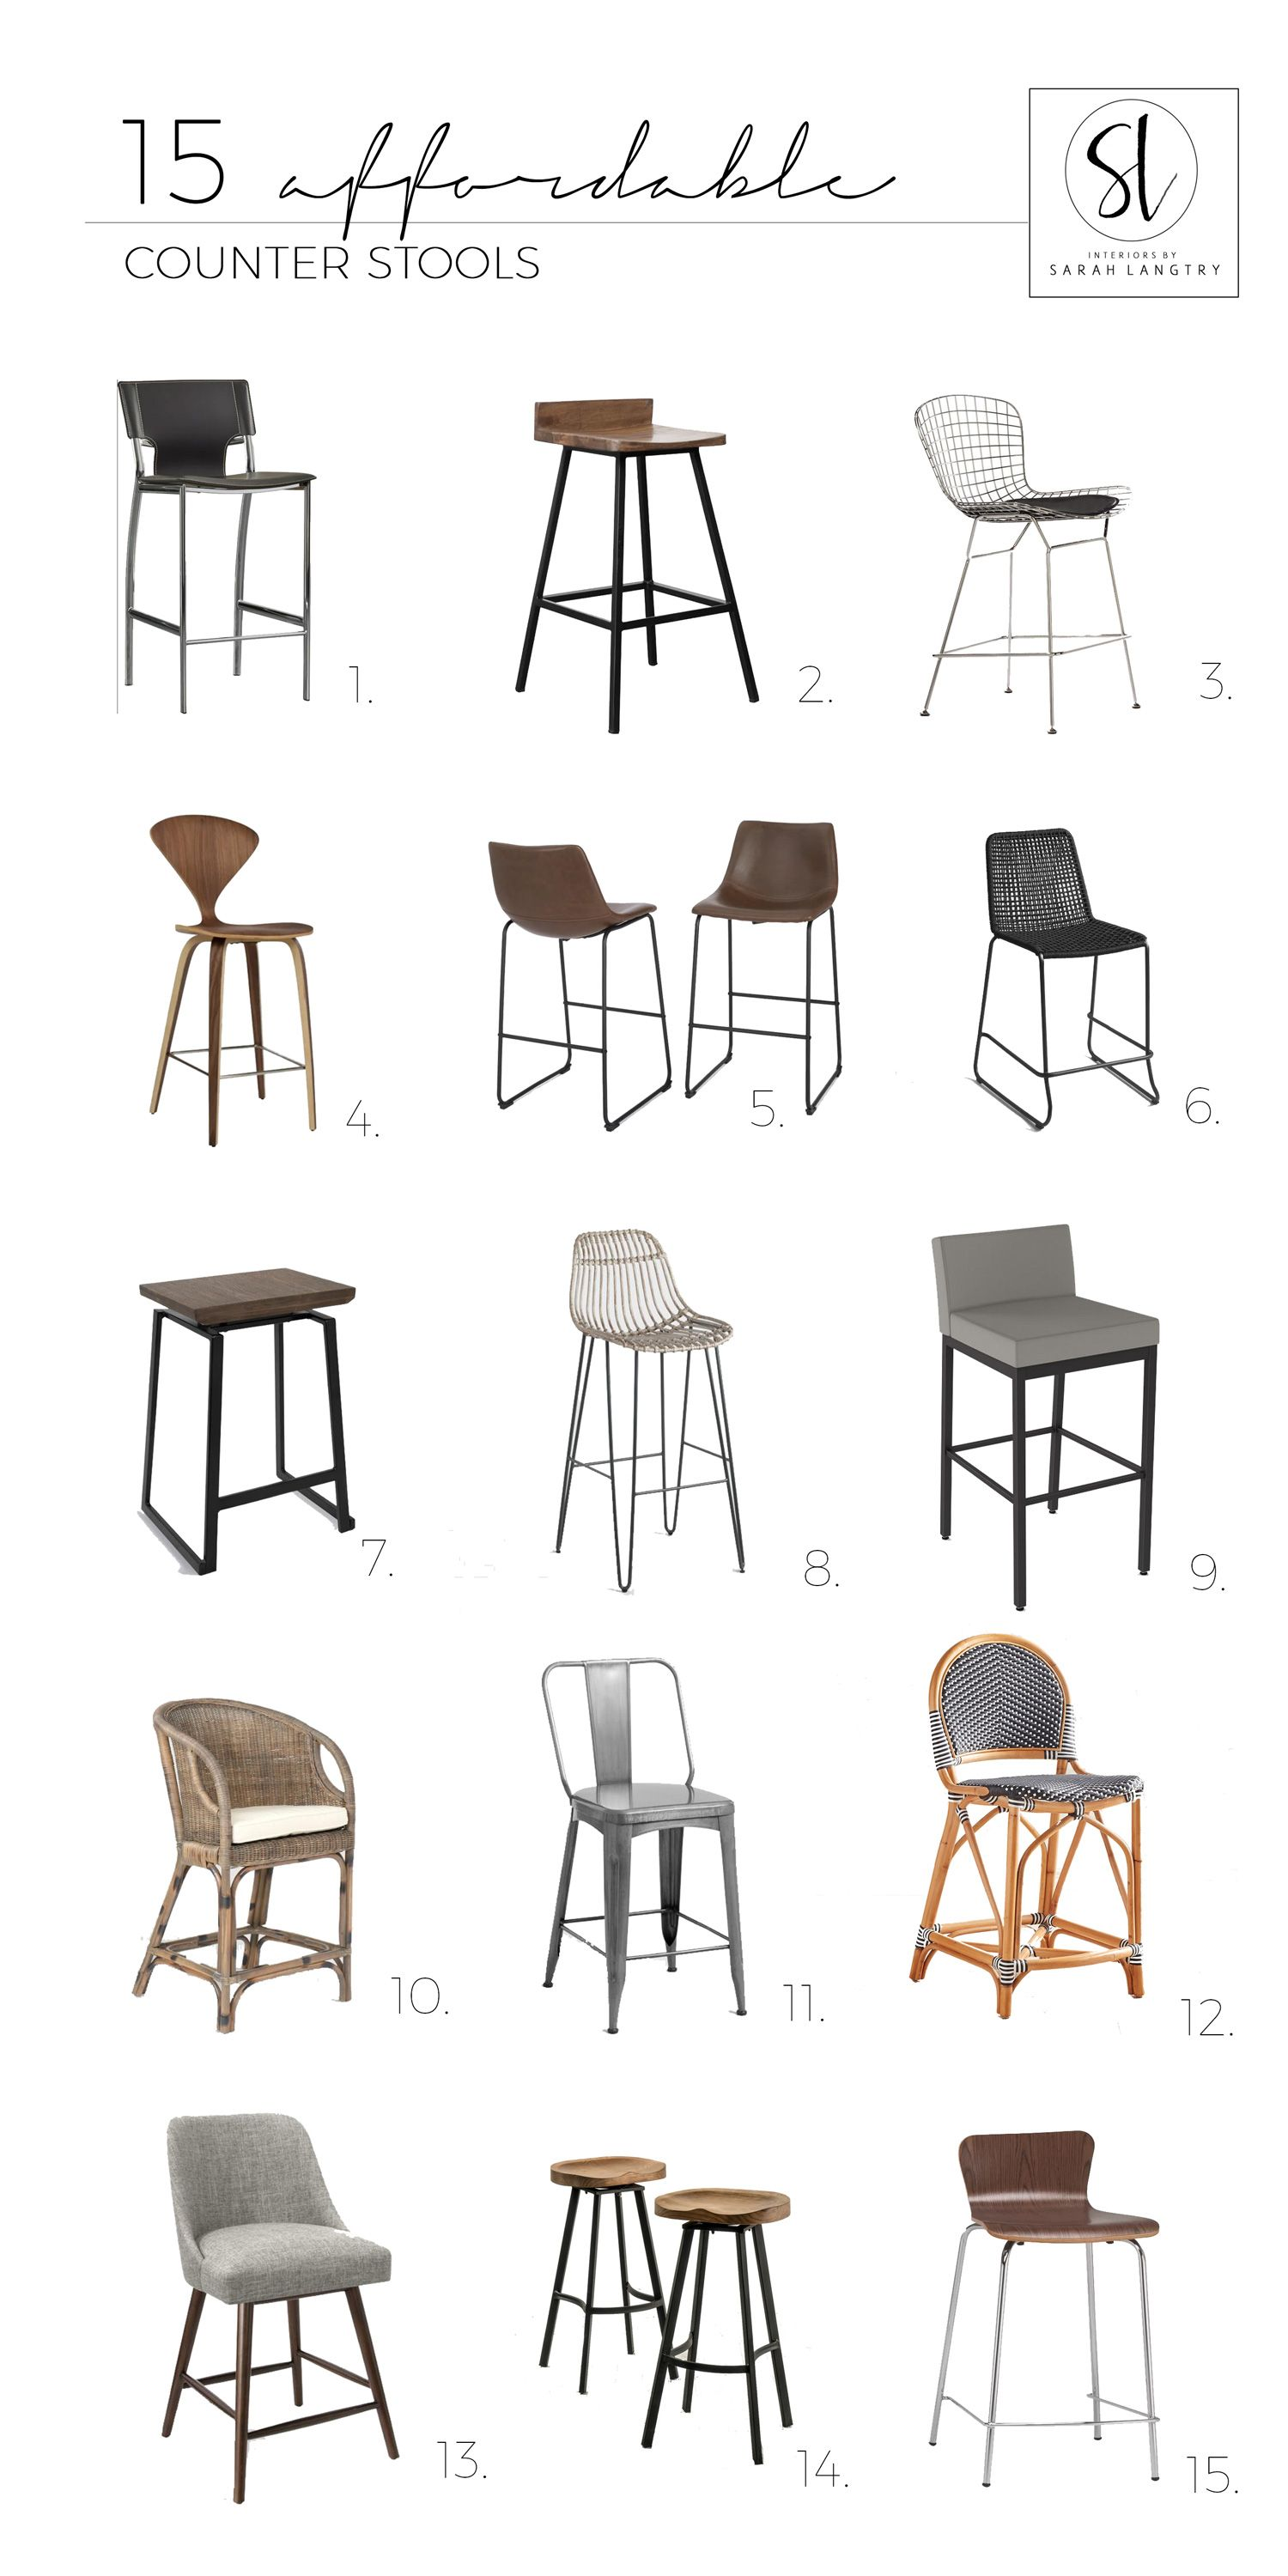 Cool 15 Affordable Counter Stools Stools For Kitchen Island Gmtry Best Dining Table And Chair Ideas Images Gmtryco